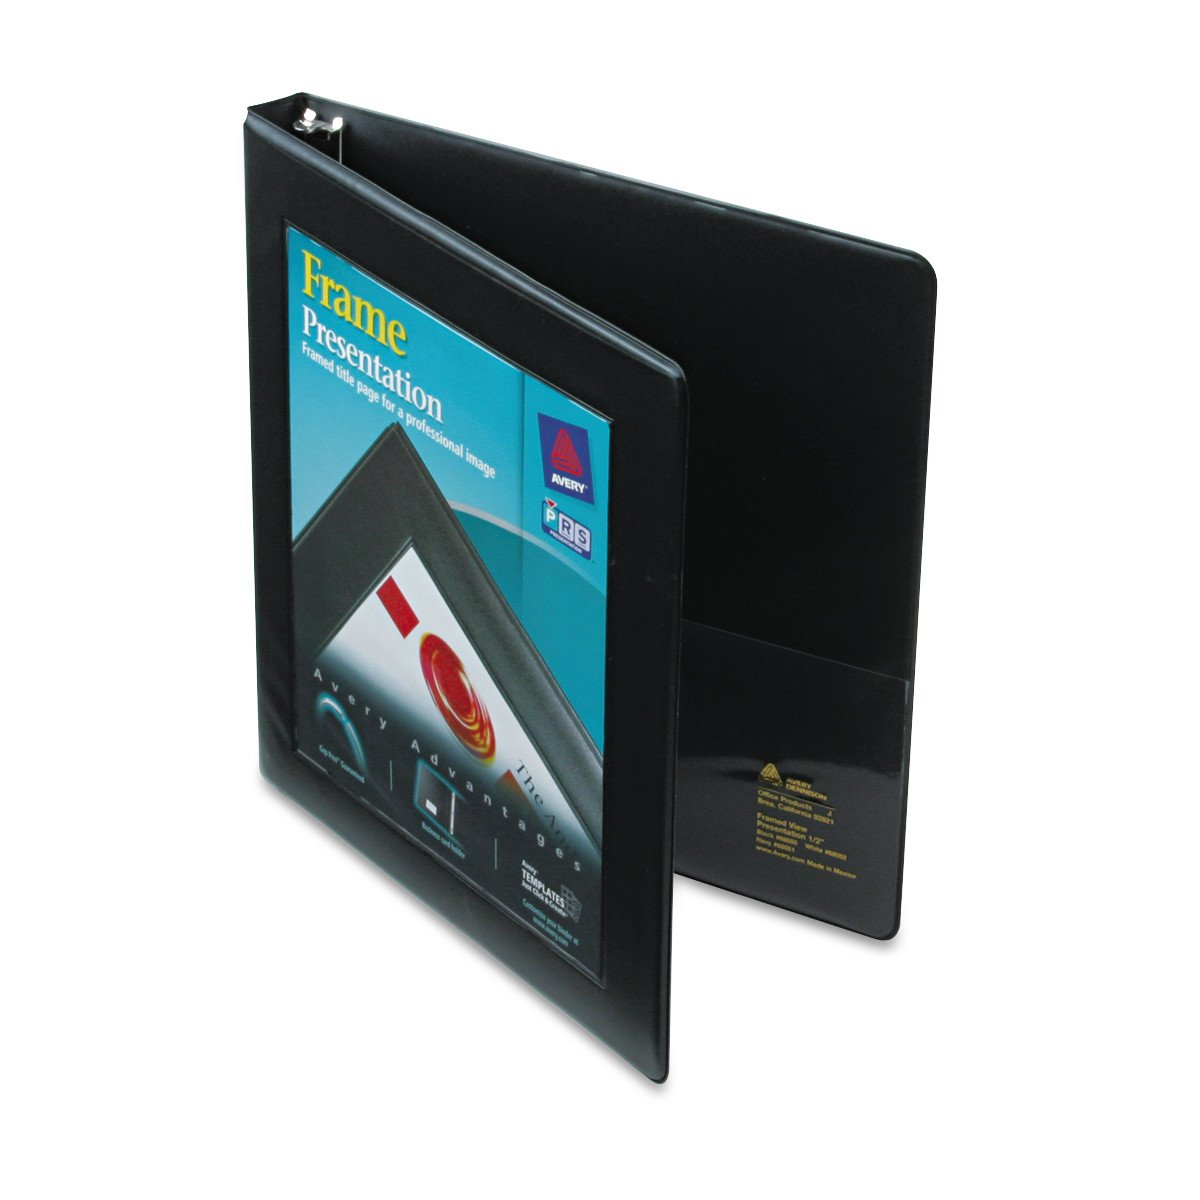 Avery Framed View Binder with 0.5 inch Gap Free Slant Ring, Black (68050) by Avery (Image #1)